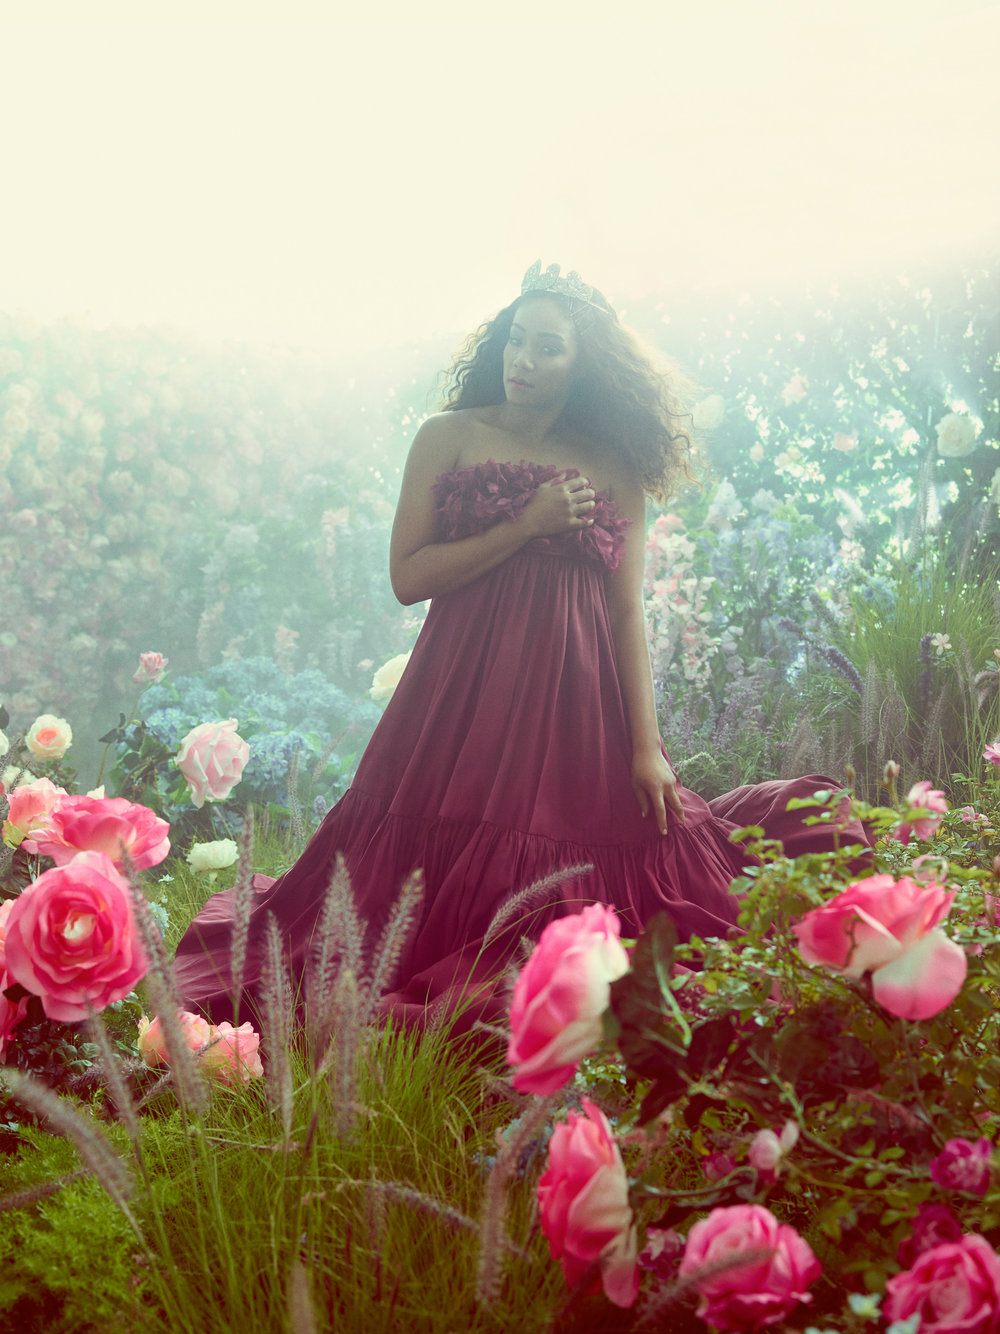 180306_TiffanyHaddish_THR_S05_0754.jpg